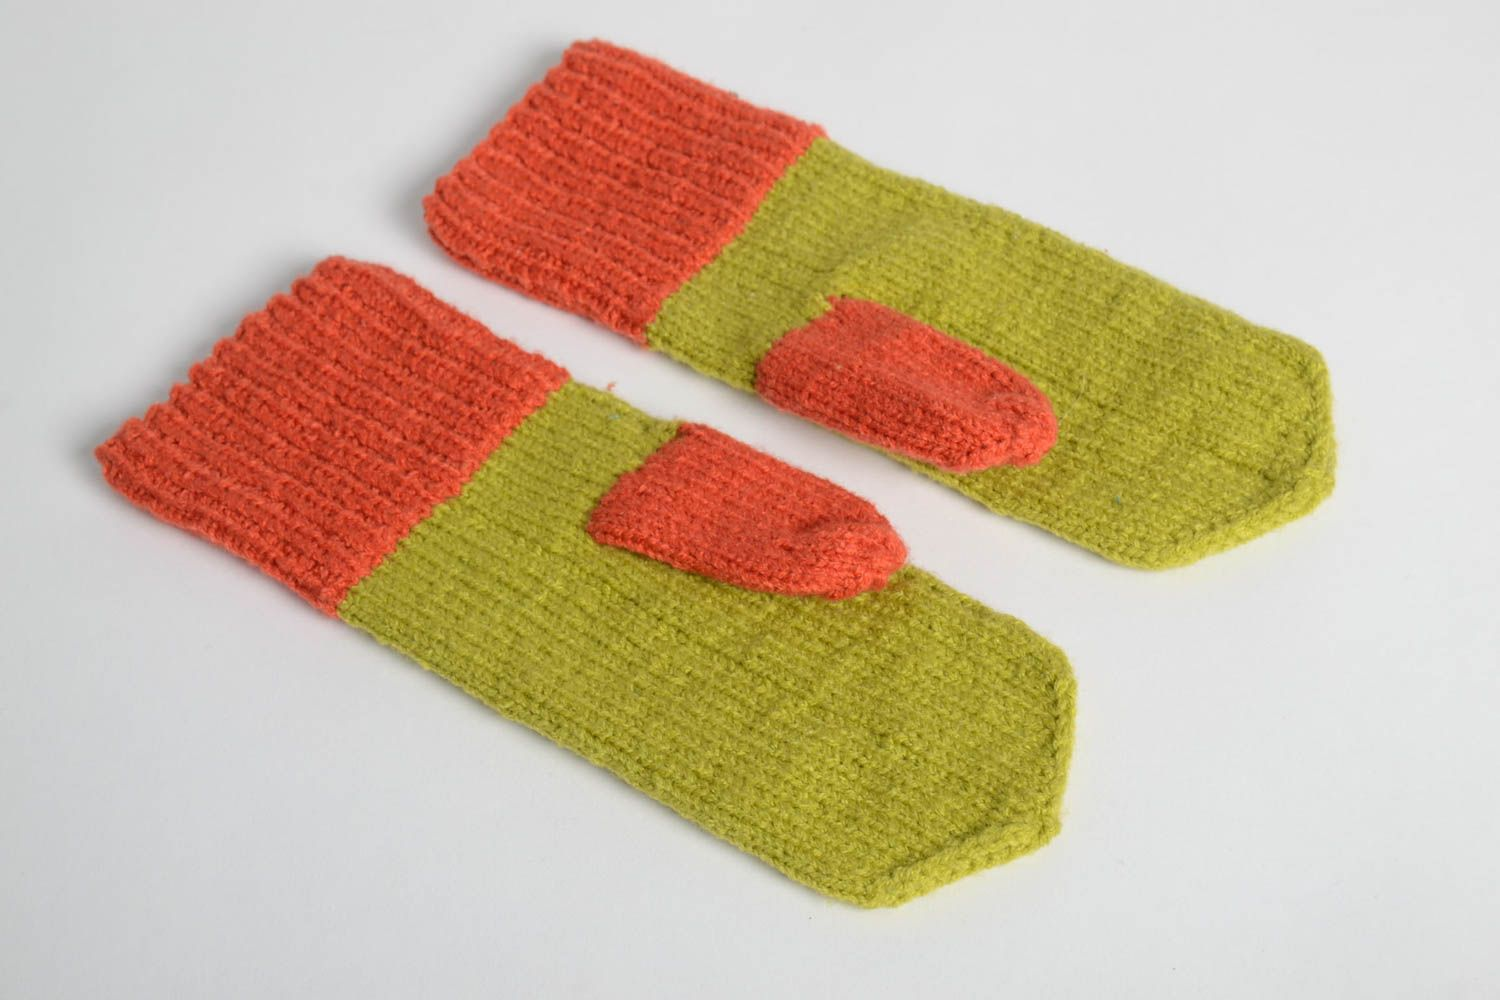 Handmade bright beautiful mittens designer knitted mittens winter clothes photo 4